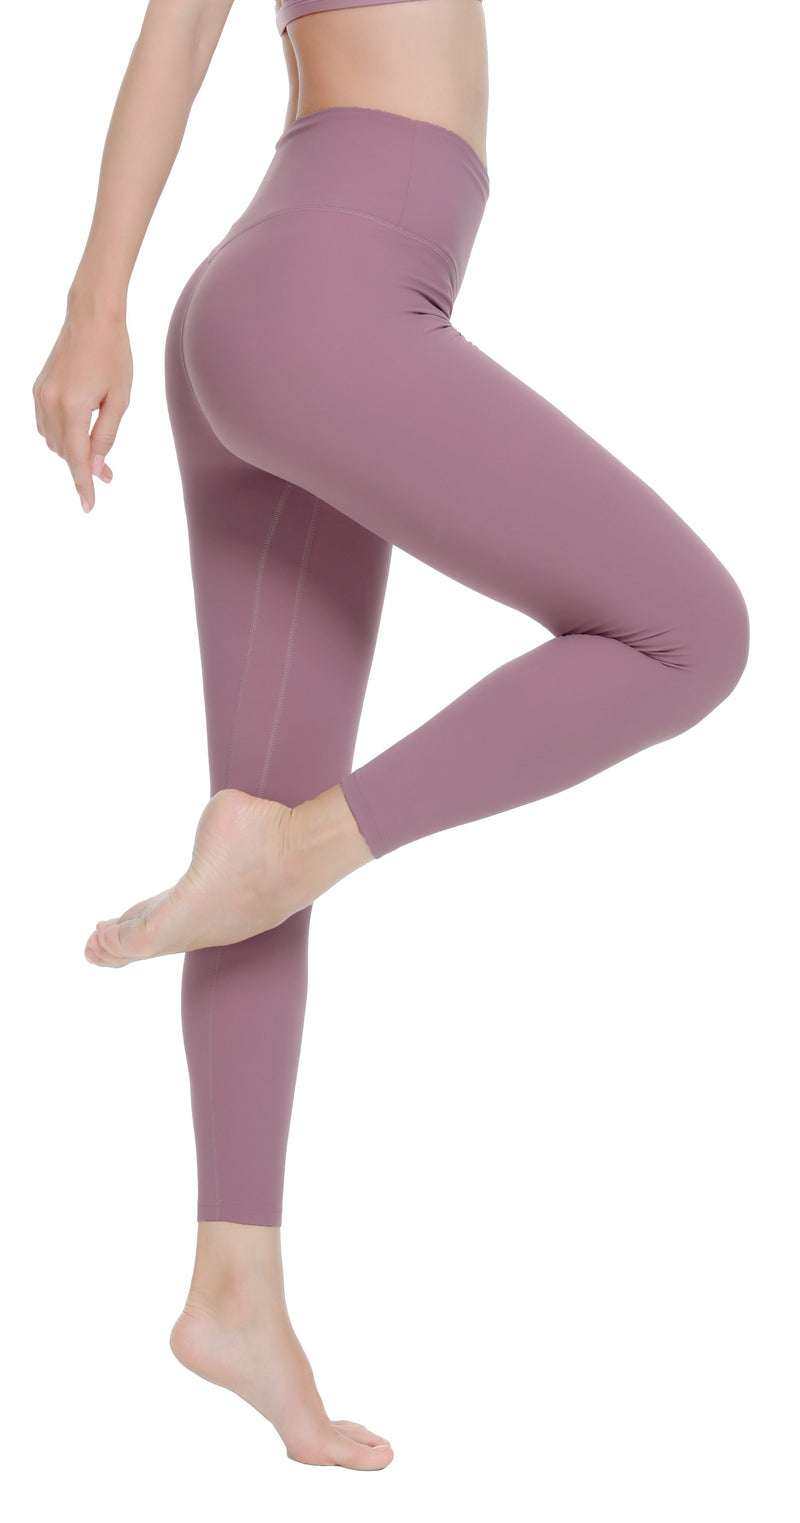 Women Yoga Leggings High Waisted Buttery-Soft 7/8 Length Pants 90826-NEW RELEASE